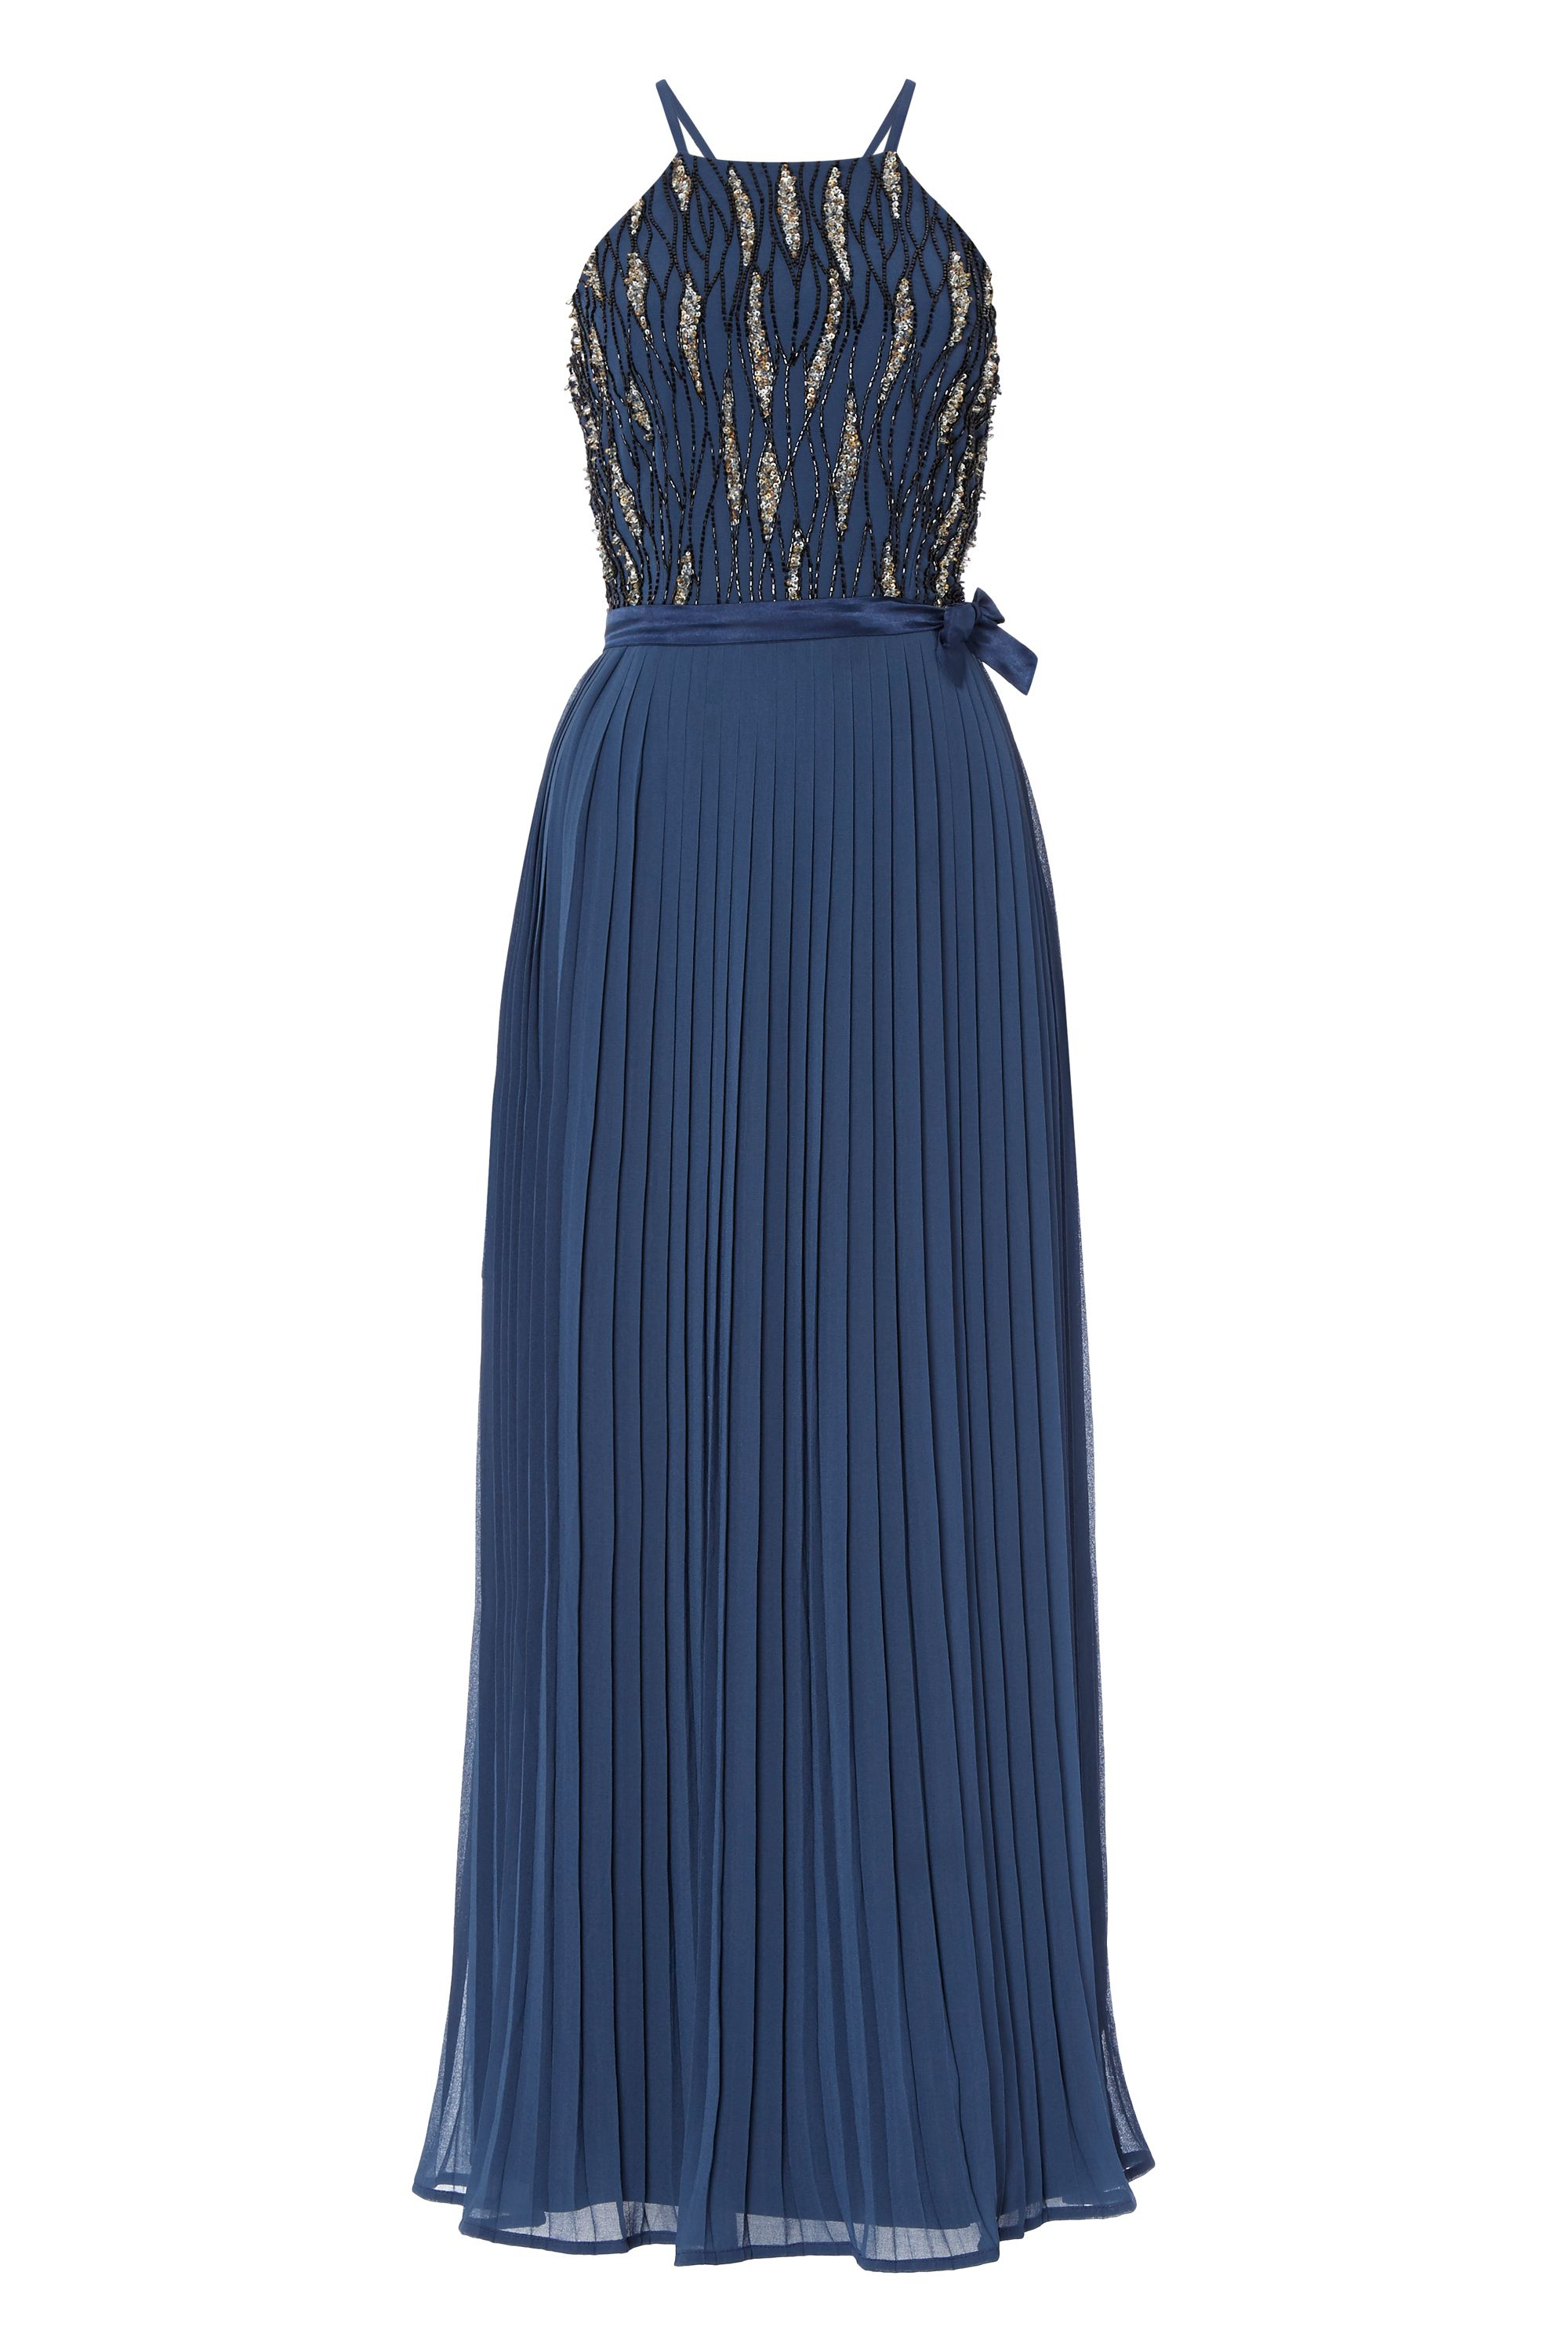 RAISHMA Pleated Midi Dress, Blue